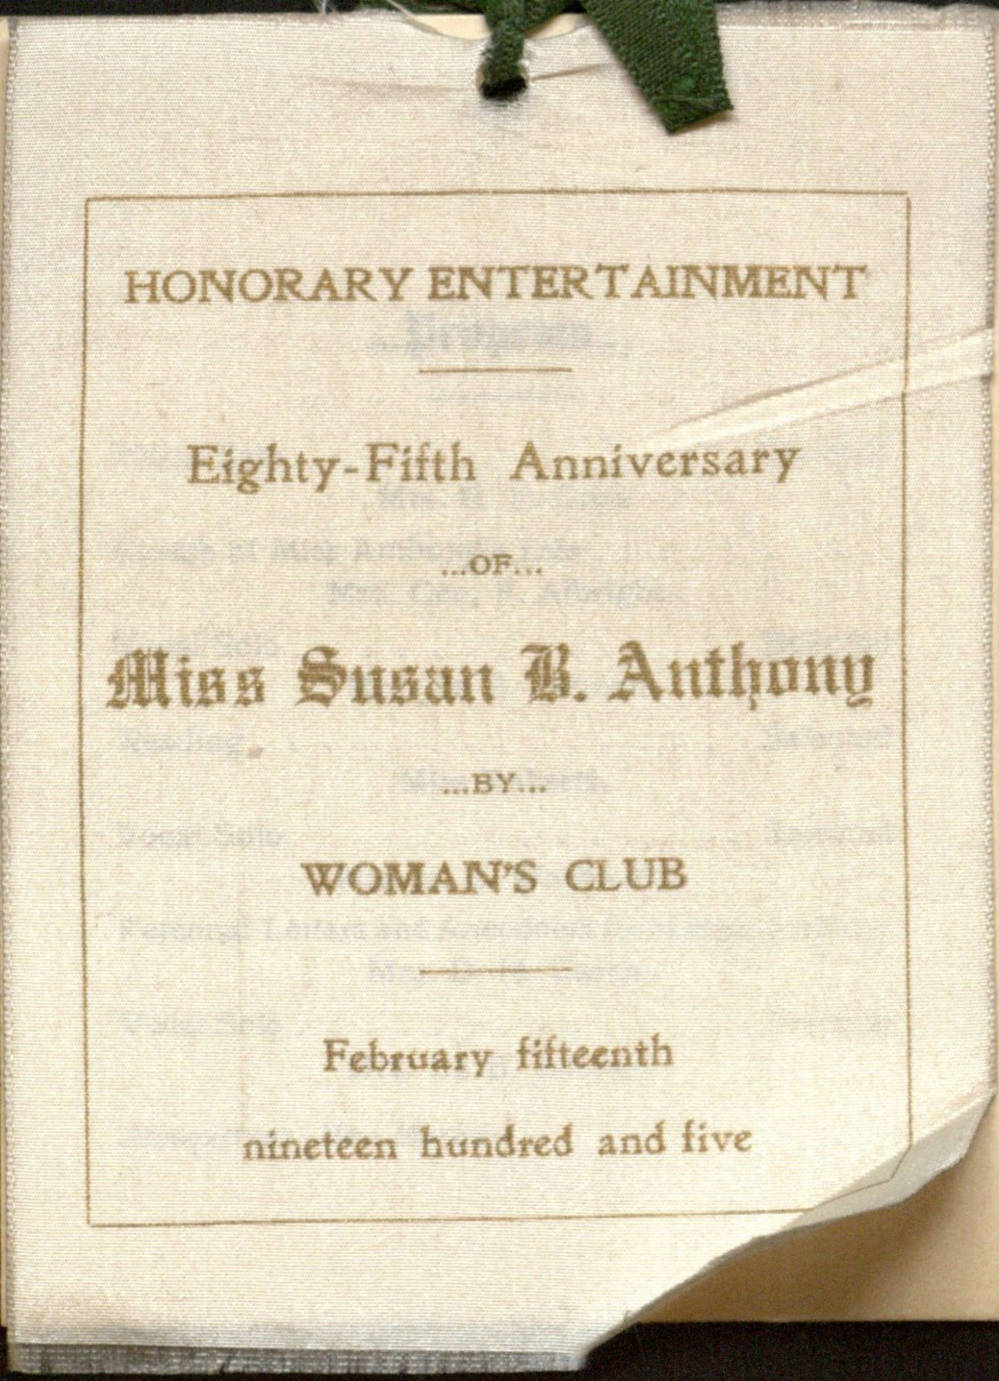 Albuquerque Women's Club Program of Honorary Entertainment, Eighty-Fifth Anniversary of Miss Susan B. Anthony, February 15, 1905. Margaret Kent Medler Scrapbook and Almanacs, MSS 225 BC Box 1, Center for Southwest Research and Special Collections, University of New Mexico Libraries. https://nmdc.unm.edu/digital/collection/Manuscripts/id/10744/rec/26